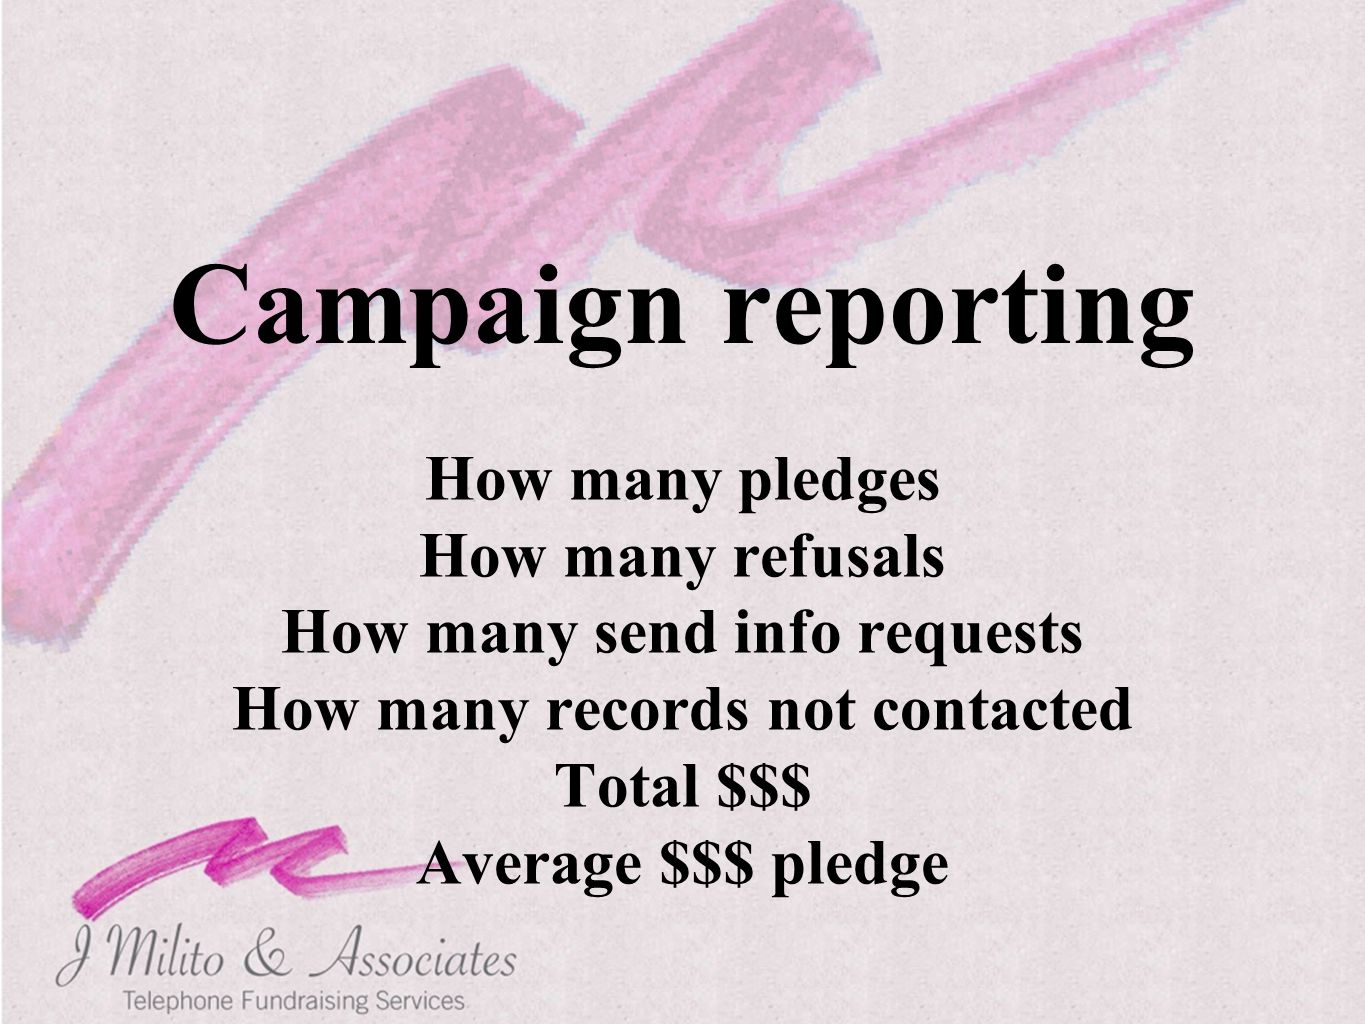 Campaign reporting How many pledges How many refusals How many send info requests How many records not contacted Total $$$ Average $$$ pledge